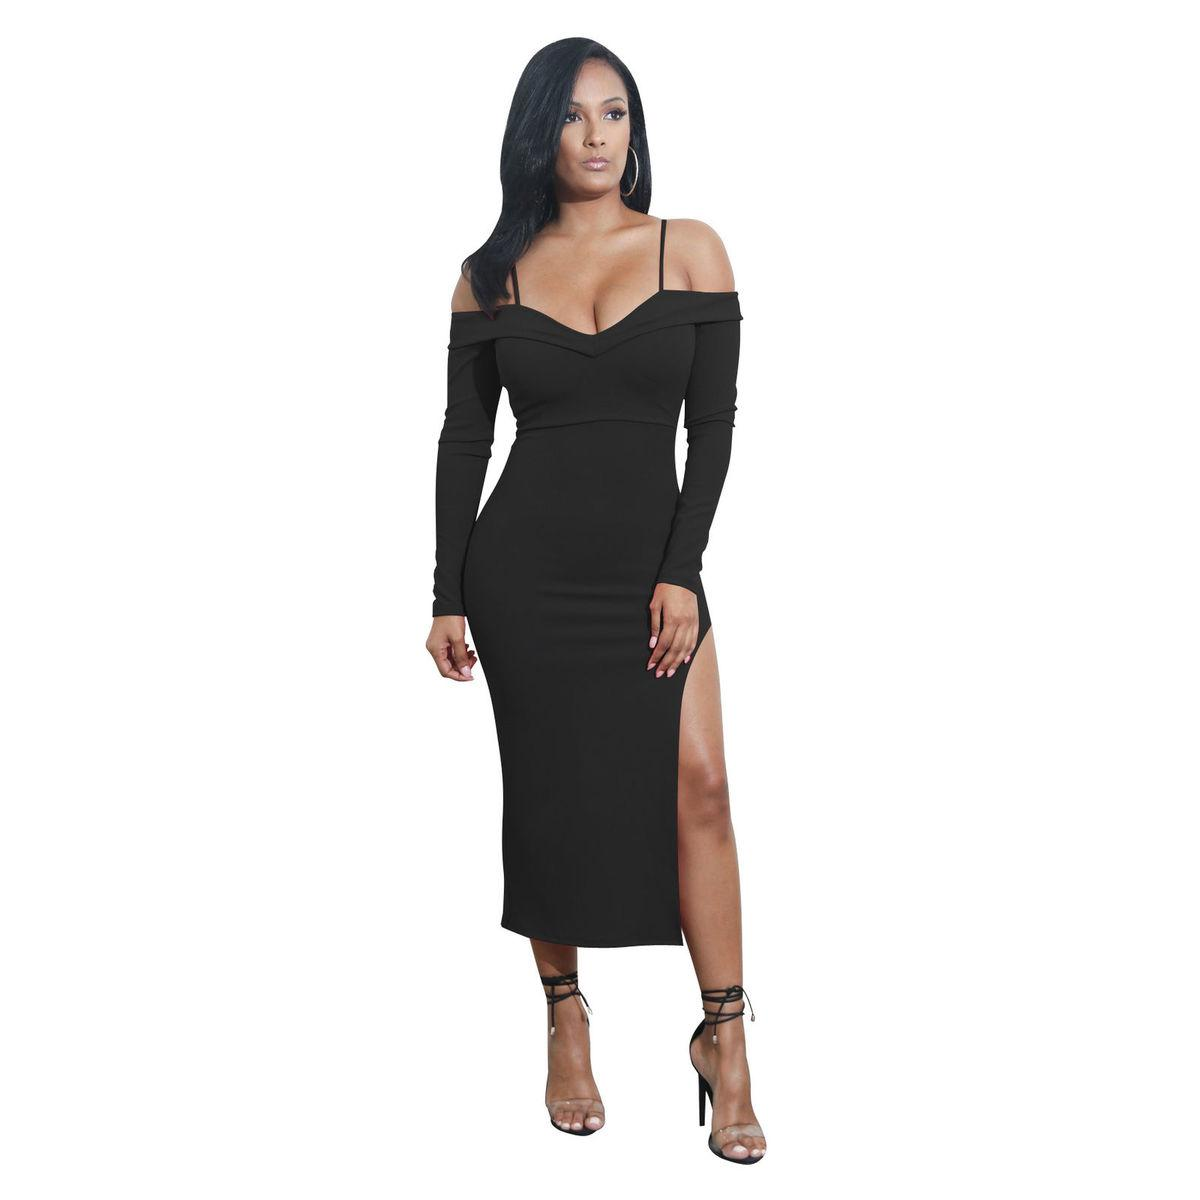 0d976aae9302 Women Sexy Dress Bodycon Sleeveless Evening Party Off Shoulder Long Sleeve  Club Pencil Dress New Fashion Women Clothes Dresses Designer Cocktail Dress  Dress ...